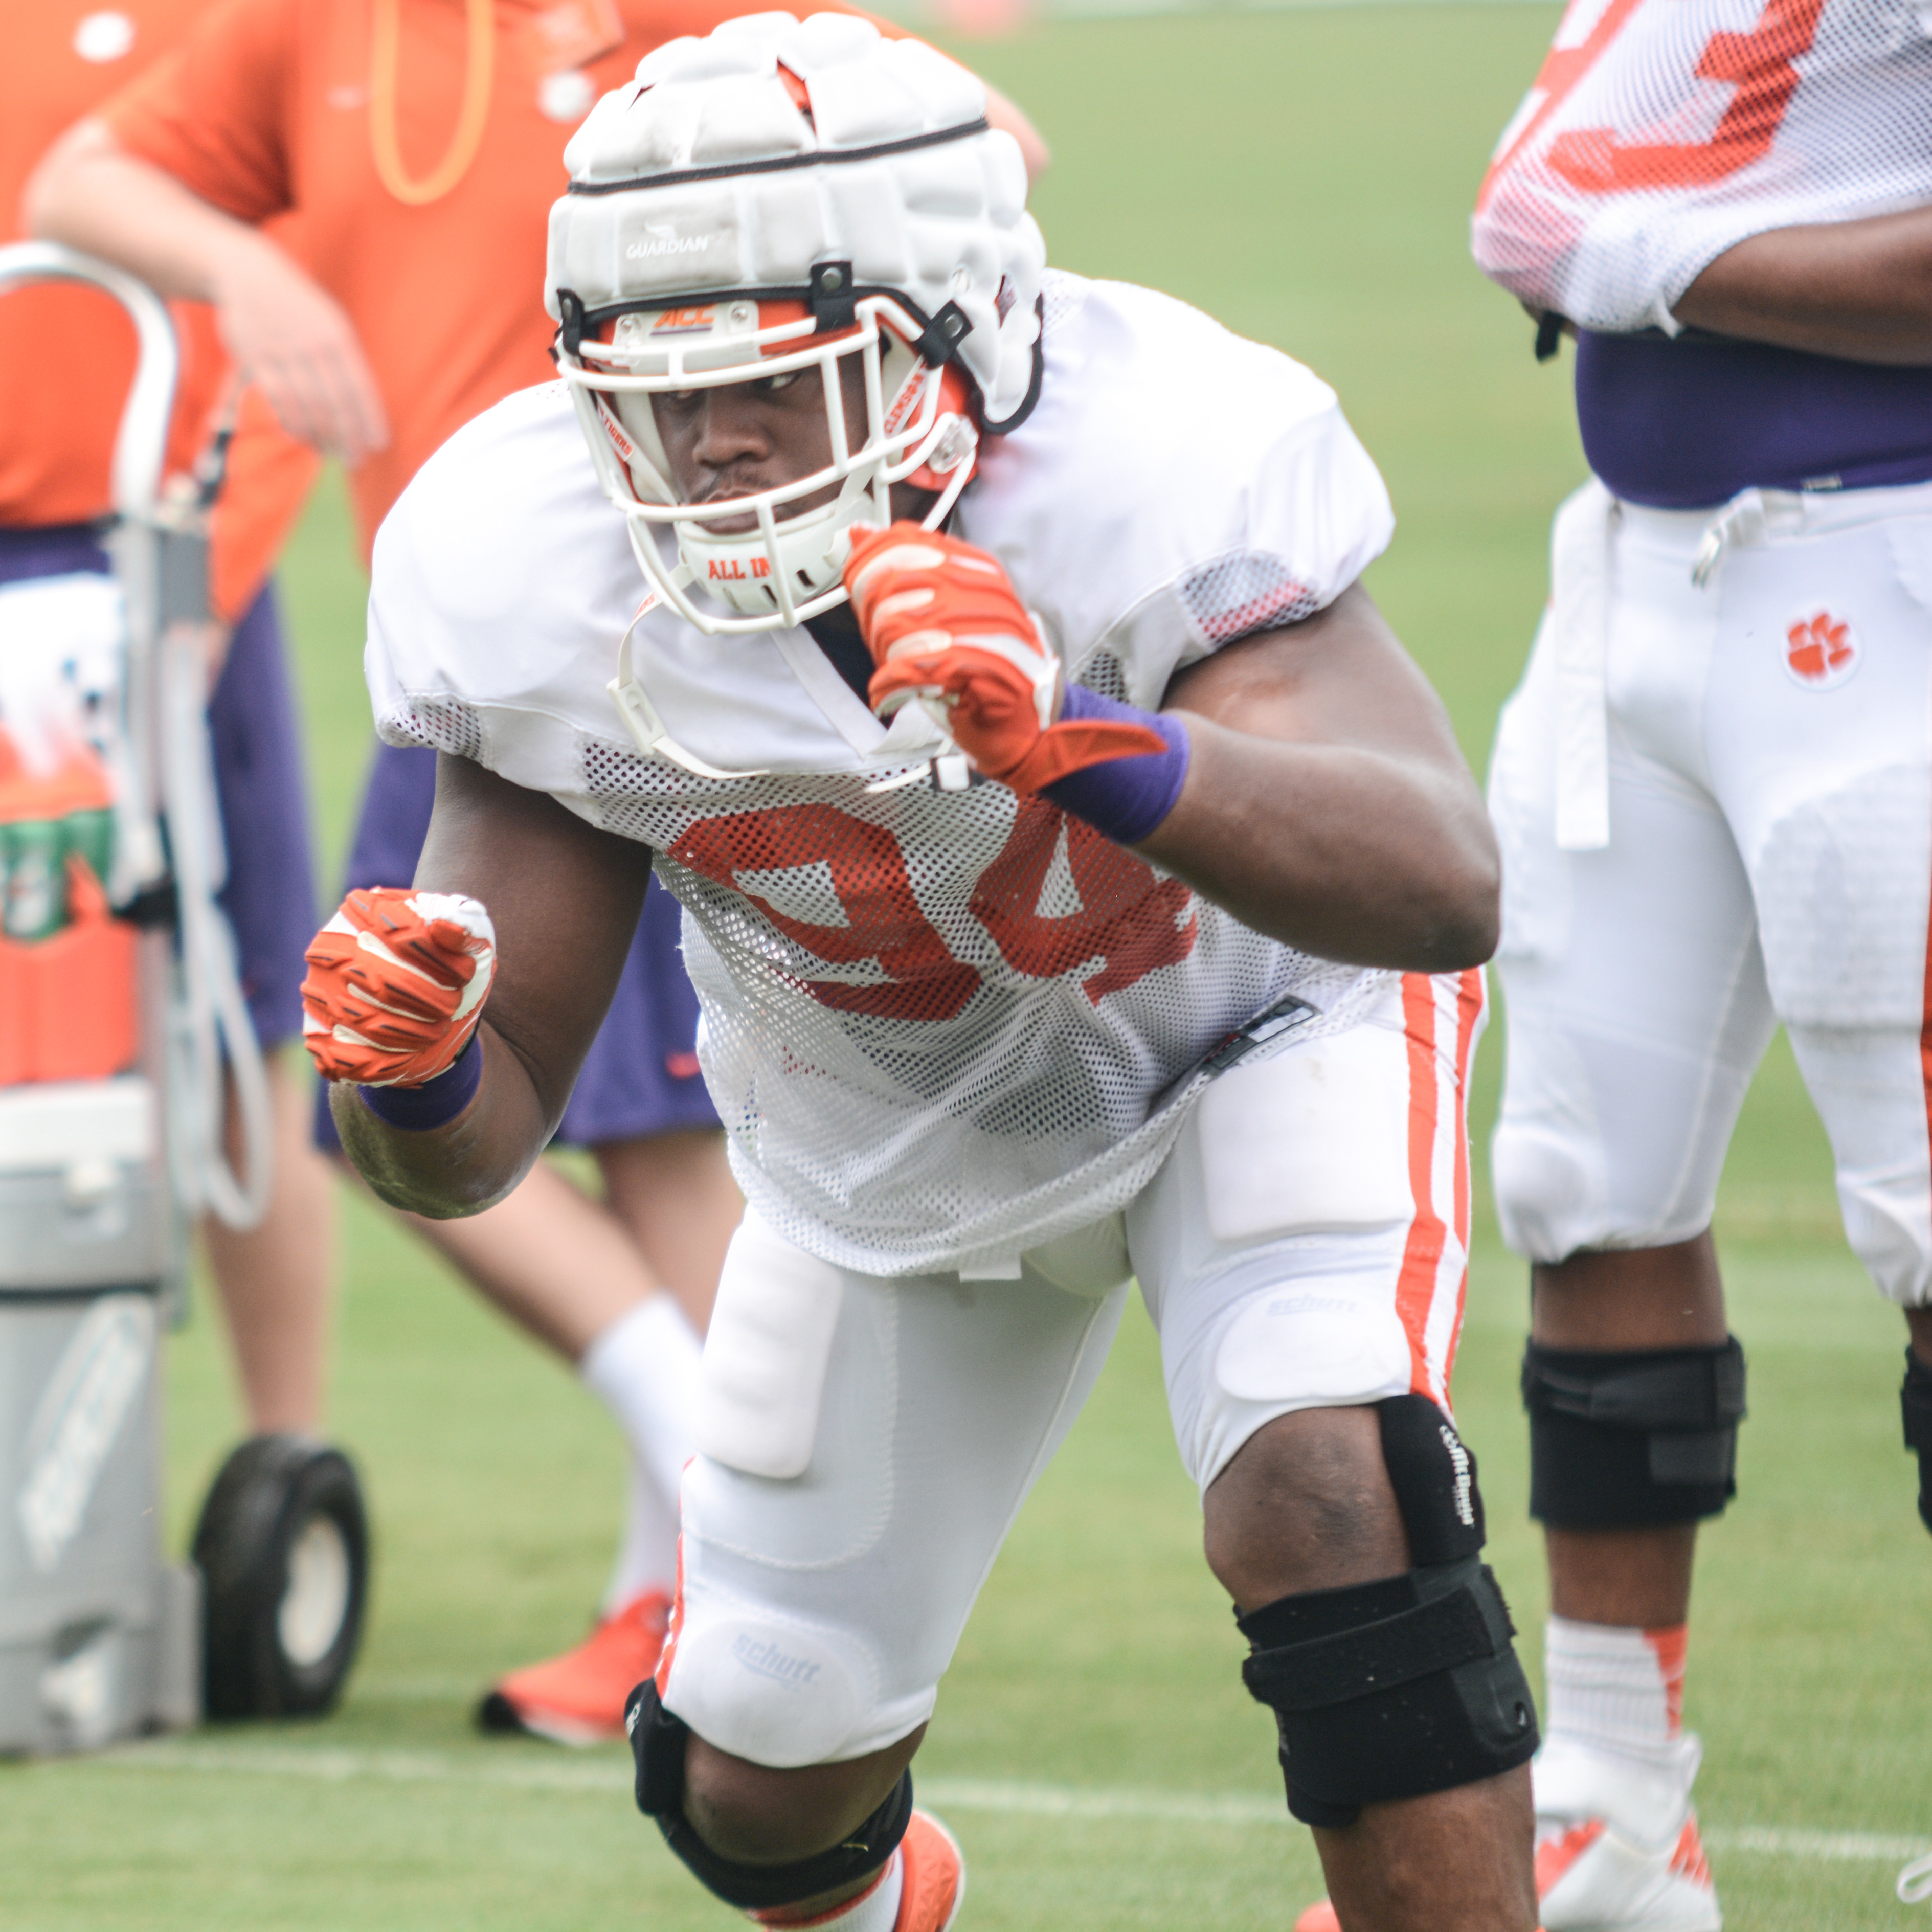 Swinney Returns to Practice